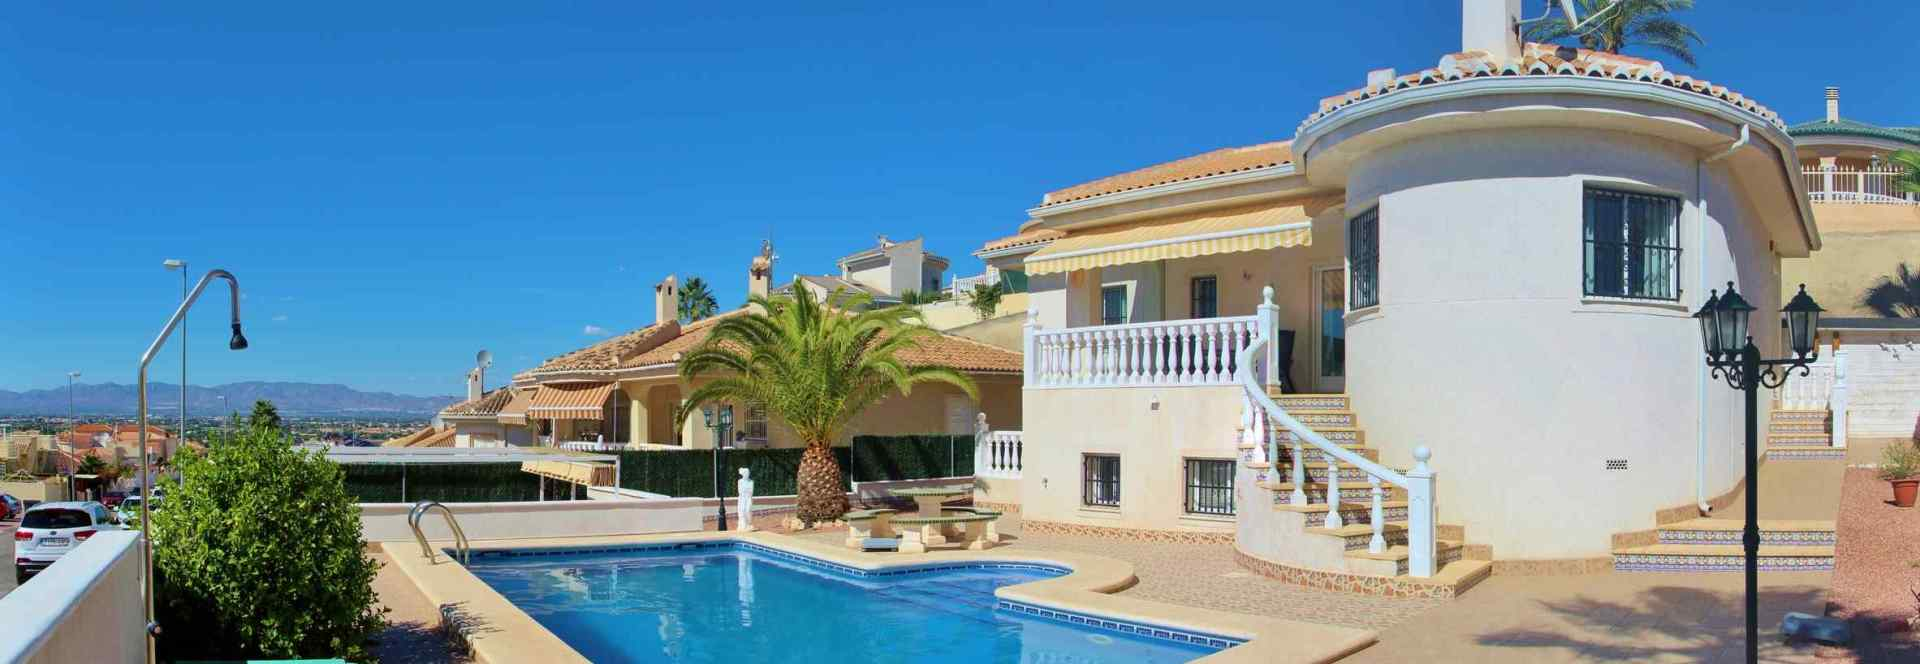 1148-bargain-4-bedroom-villa-in-quesada-on-500m2-plot-1